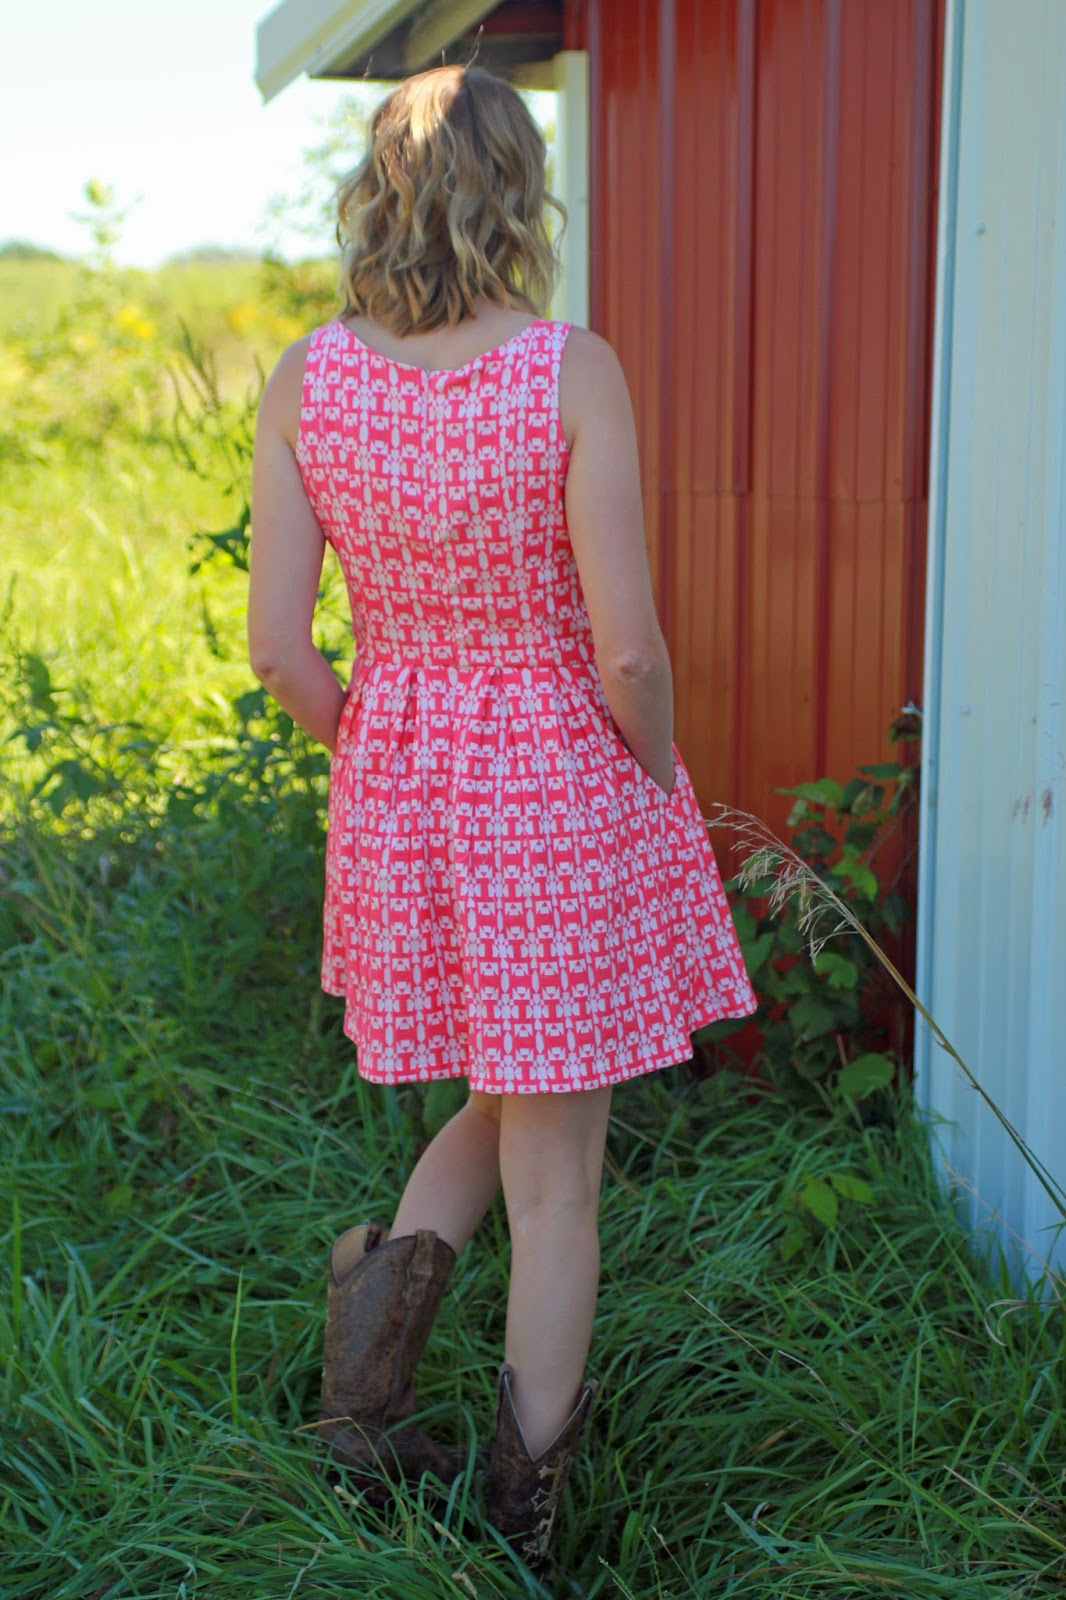 Mood Fabrics' stretch jacquard dress using  Butterick 5781